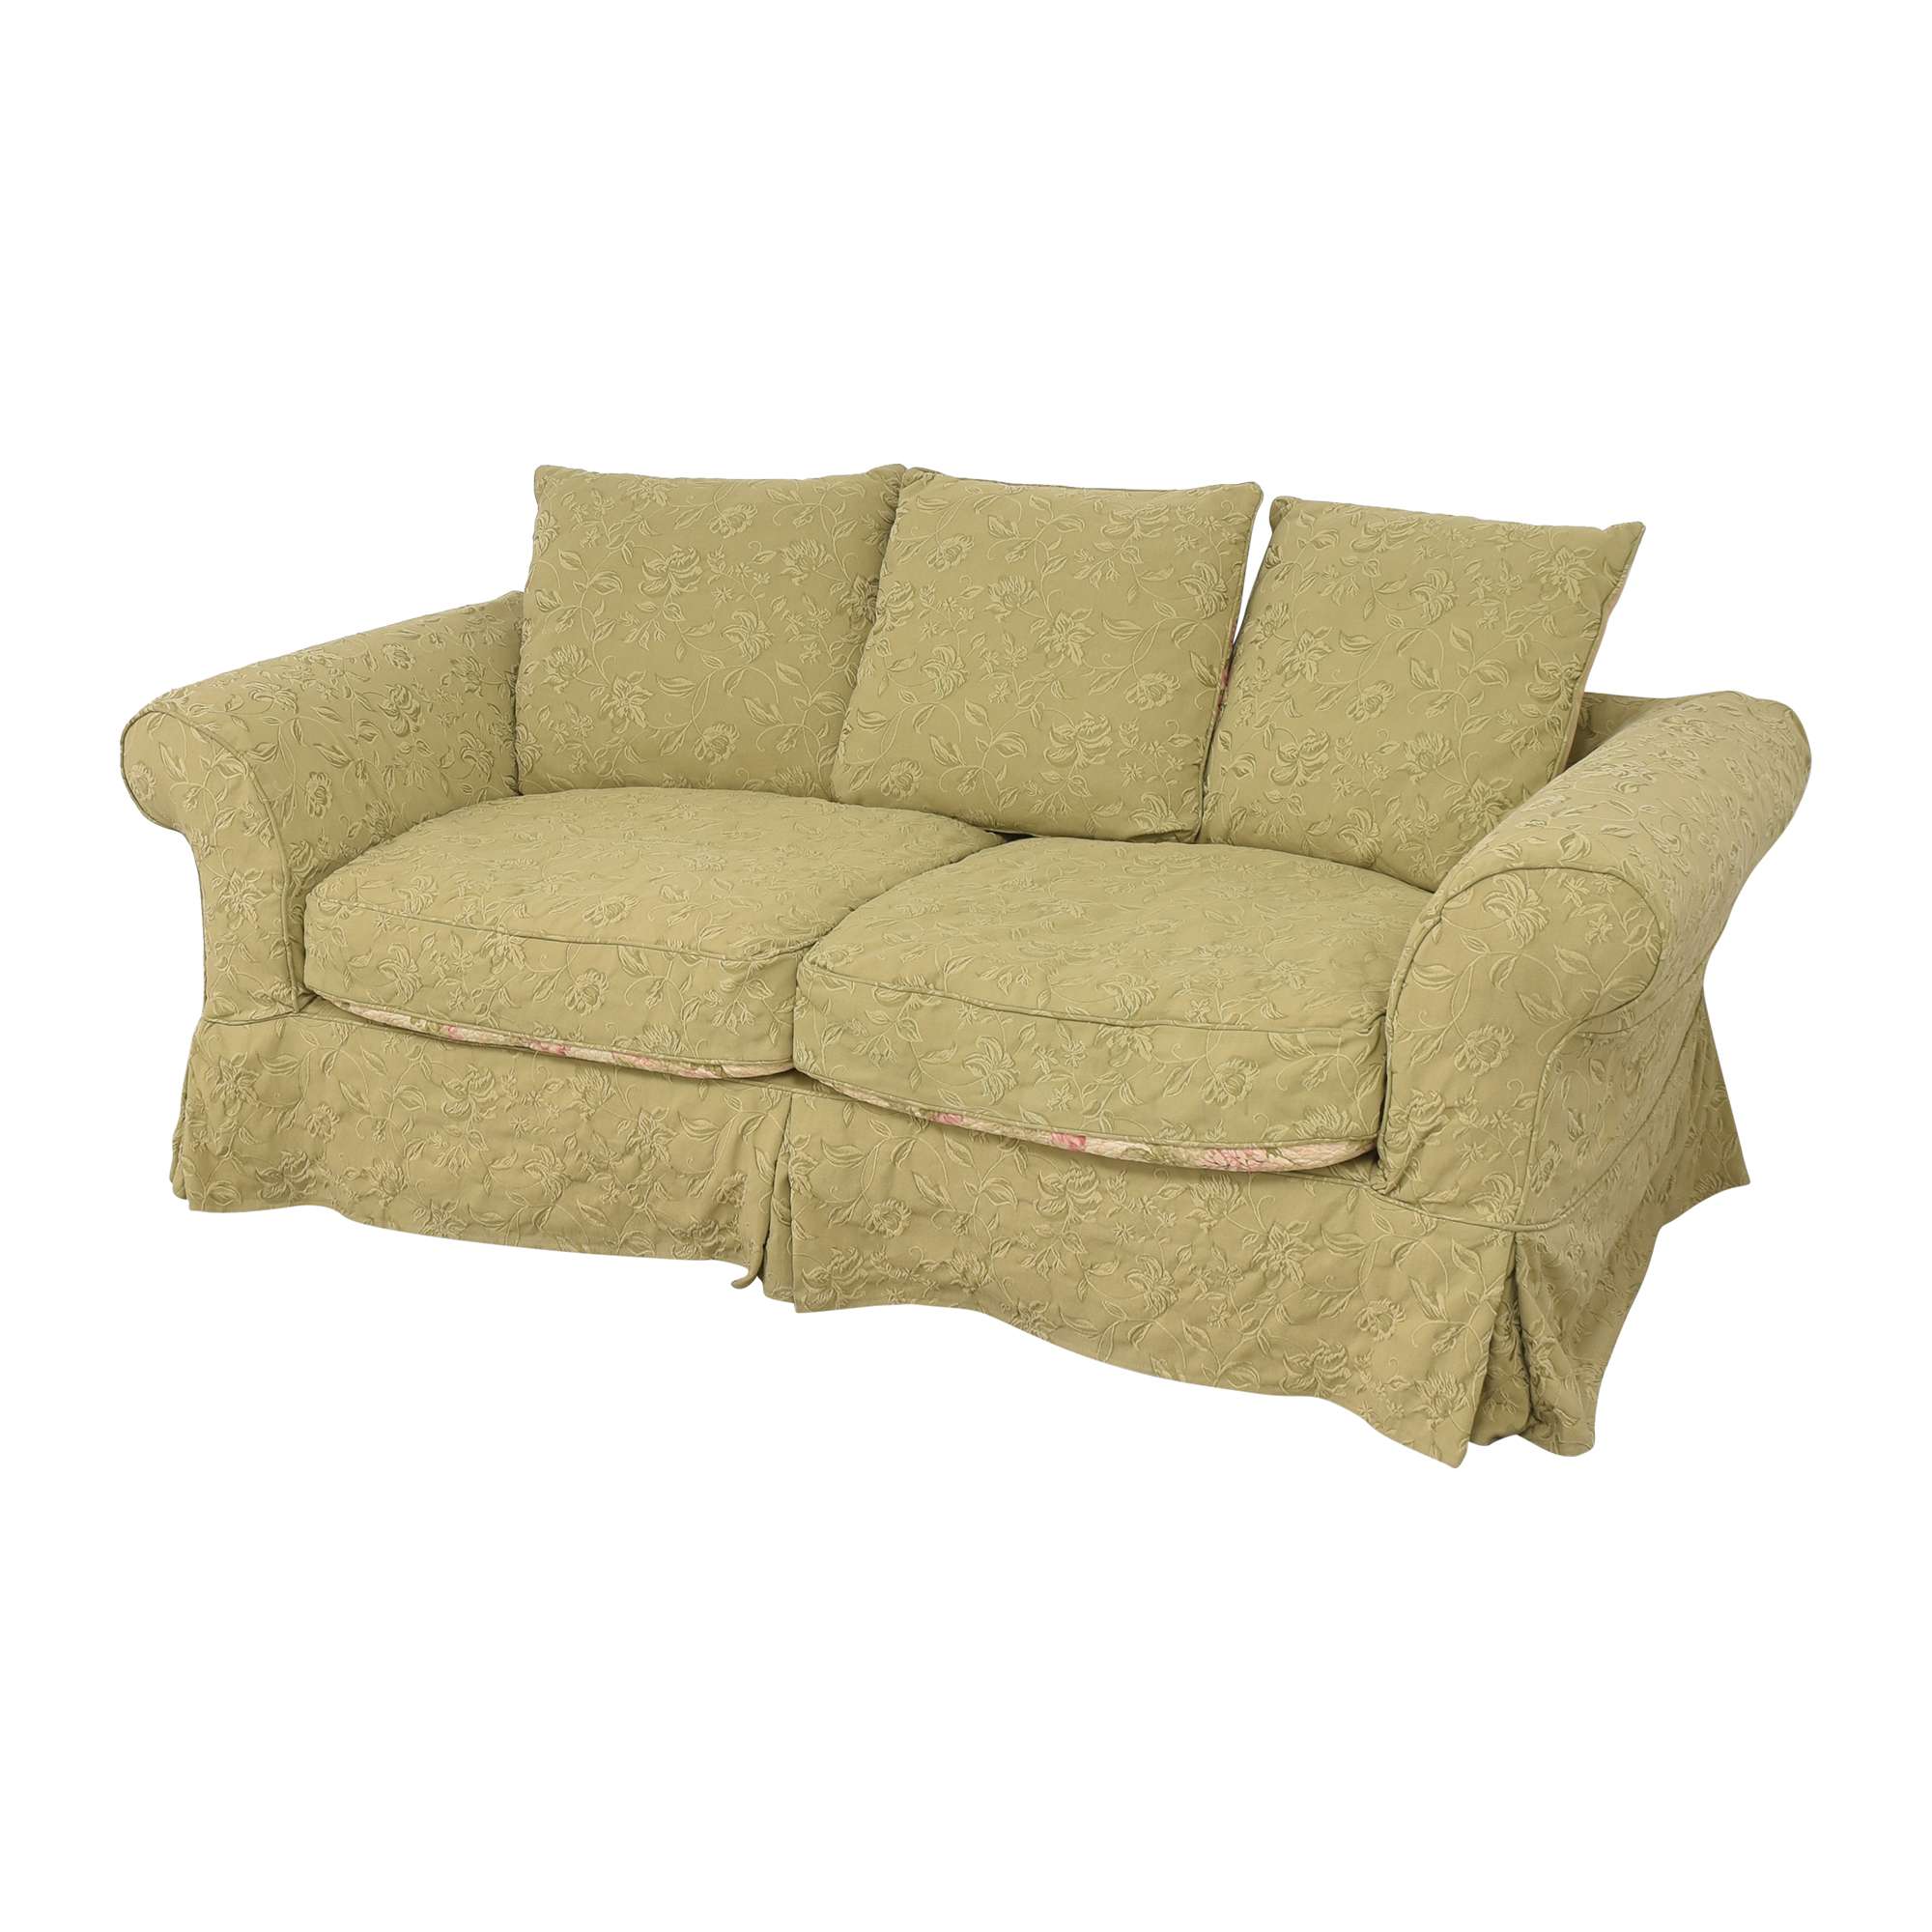 Domain Floral Slipcovered Sofa / Classic Sofas